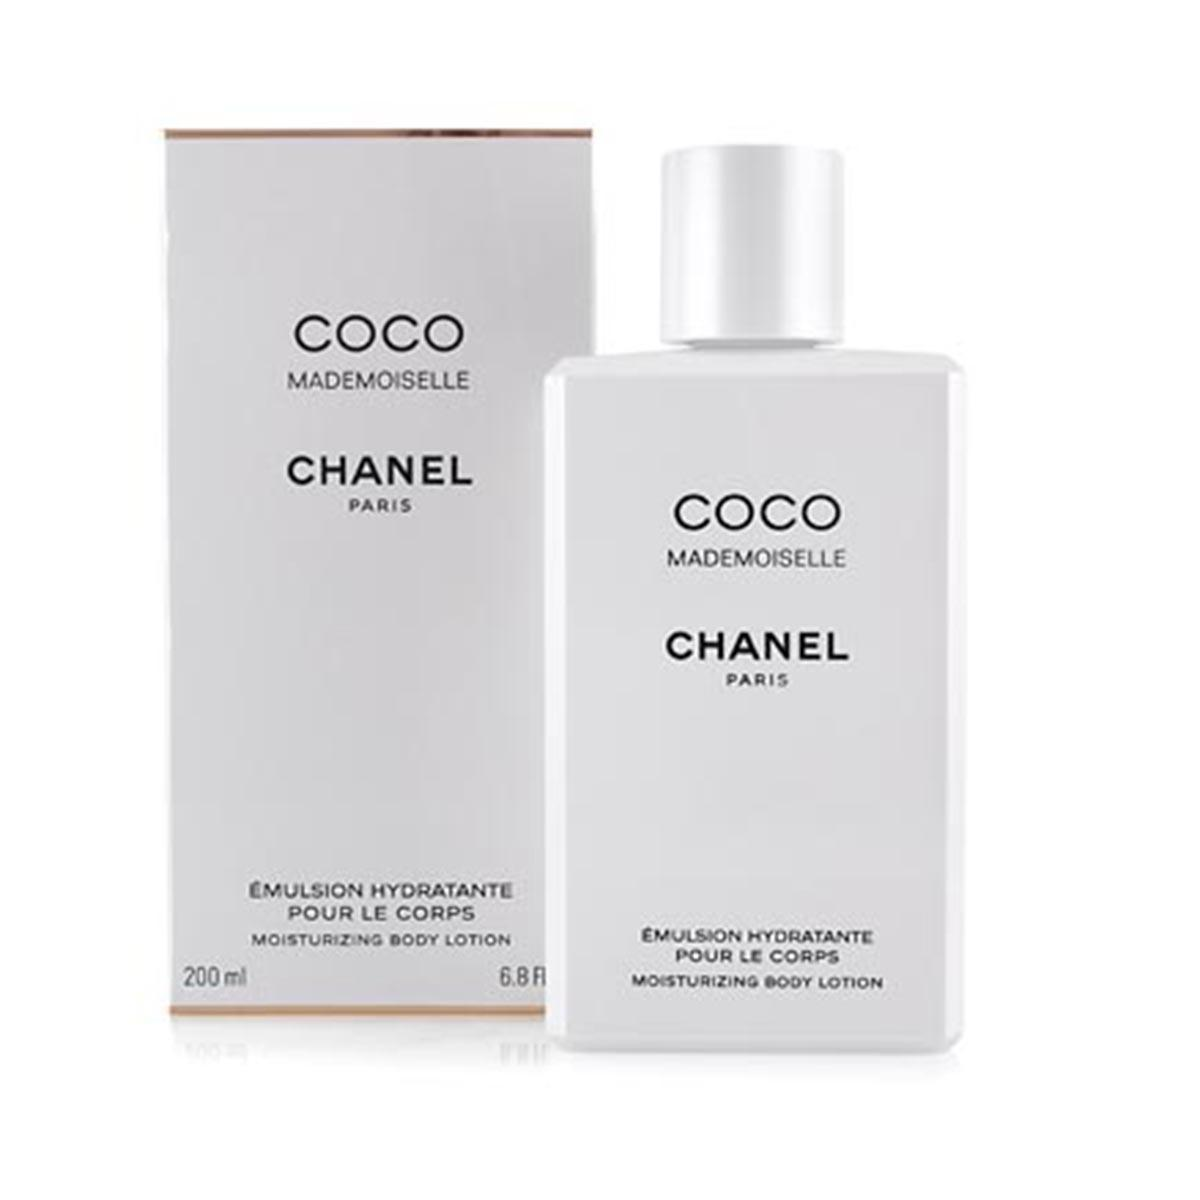 Chanel Coco Mademoiselle Body Milk 200 ml